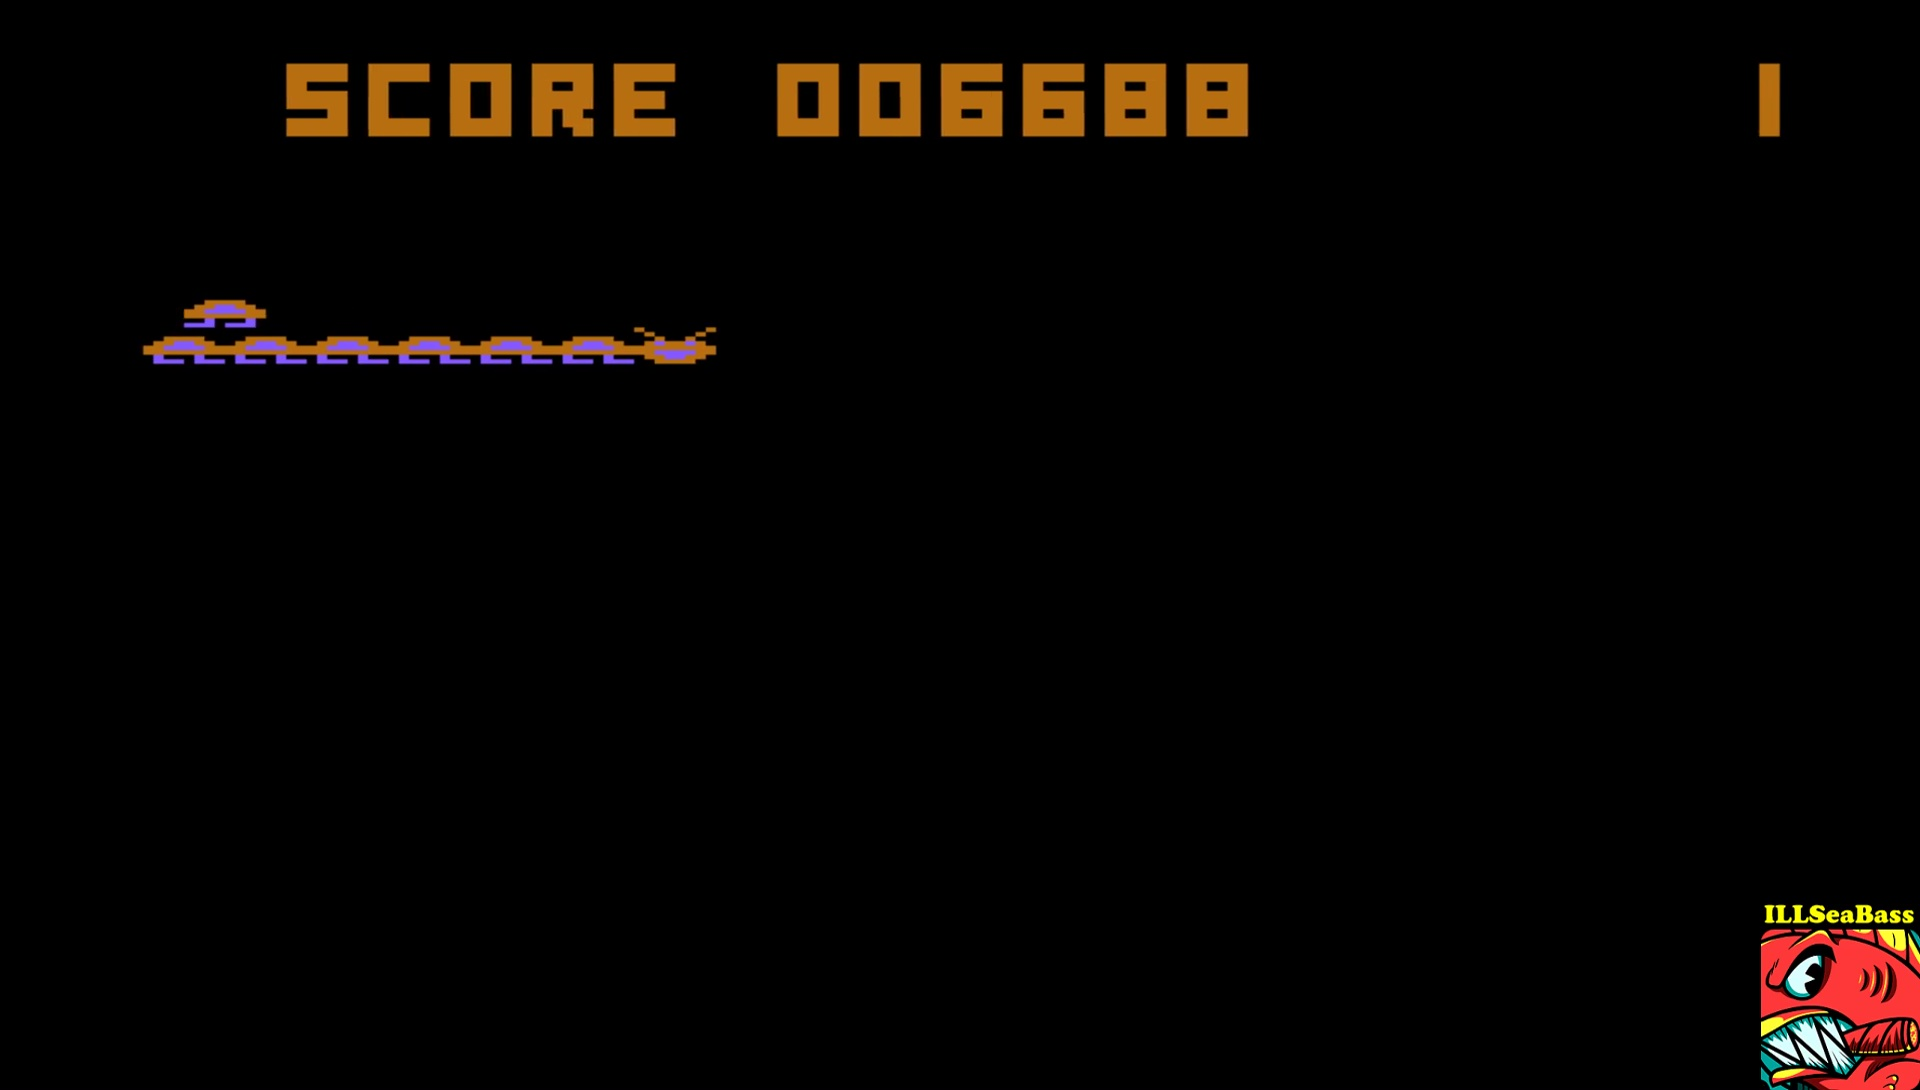 ILLSeaBass: Megalegs (Atari 400/800/XL/XE Emulated) 6,688 points on 2017-06-24 12:10:47